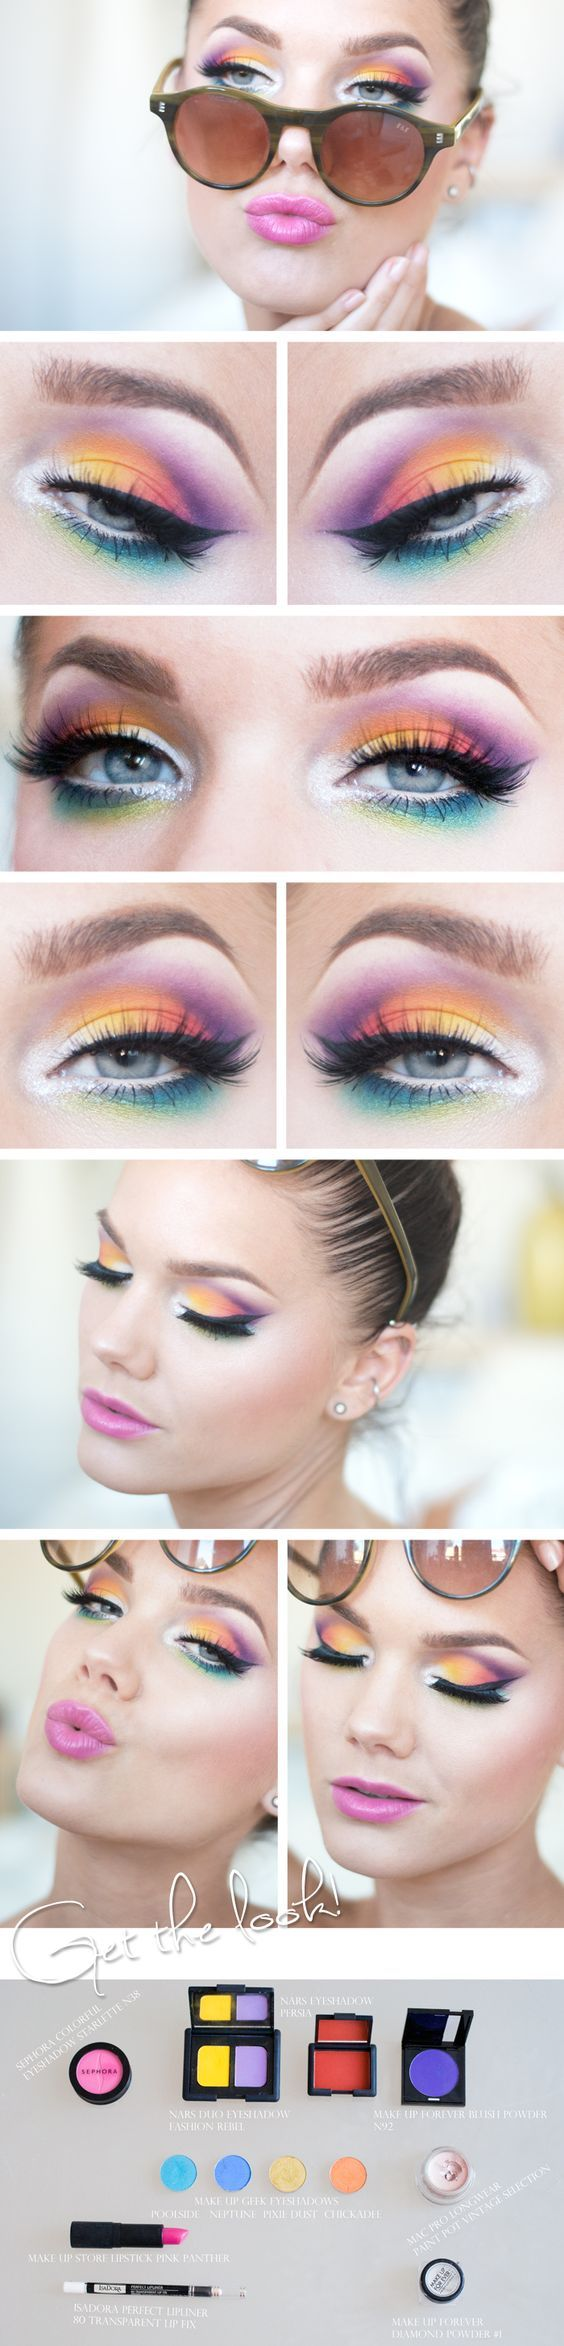 glamorous makeup looks for different occasions pinterest